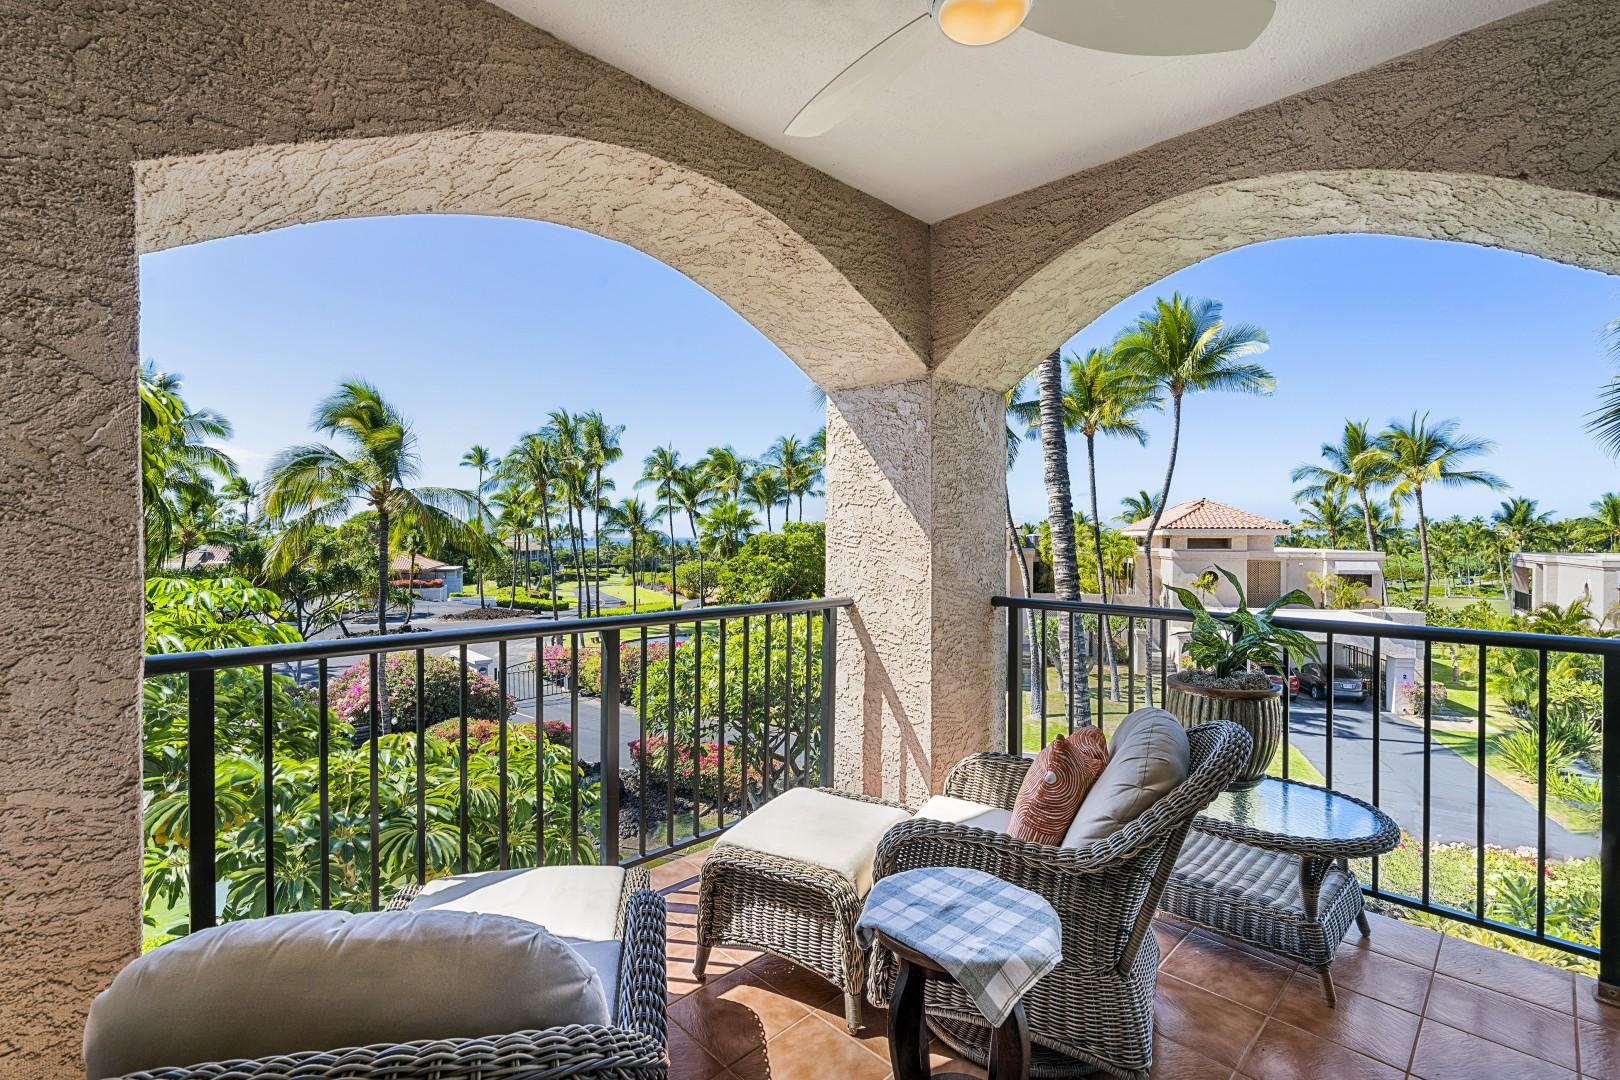 Lanai loungers to enjoy the Waikoloa wind